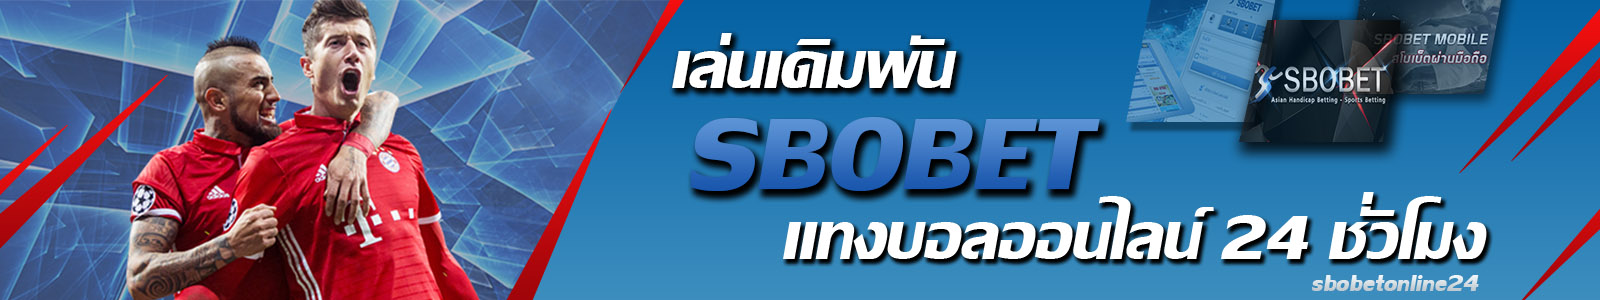 sbobetonline24-banner-website